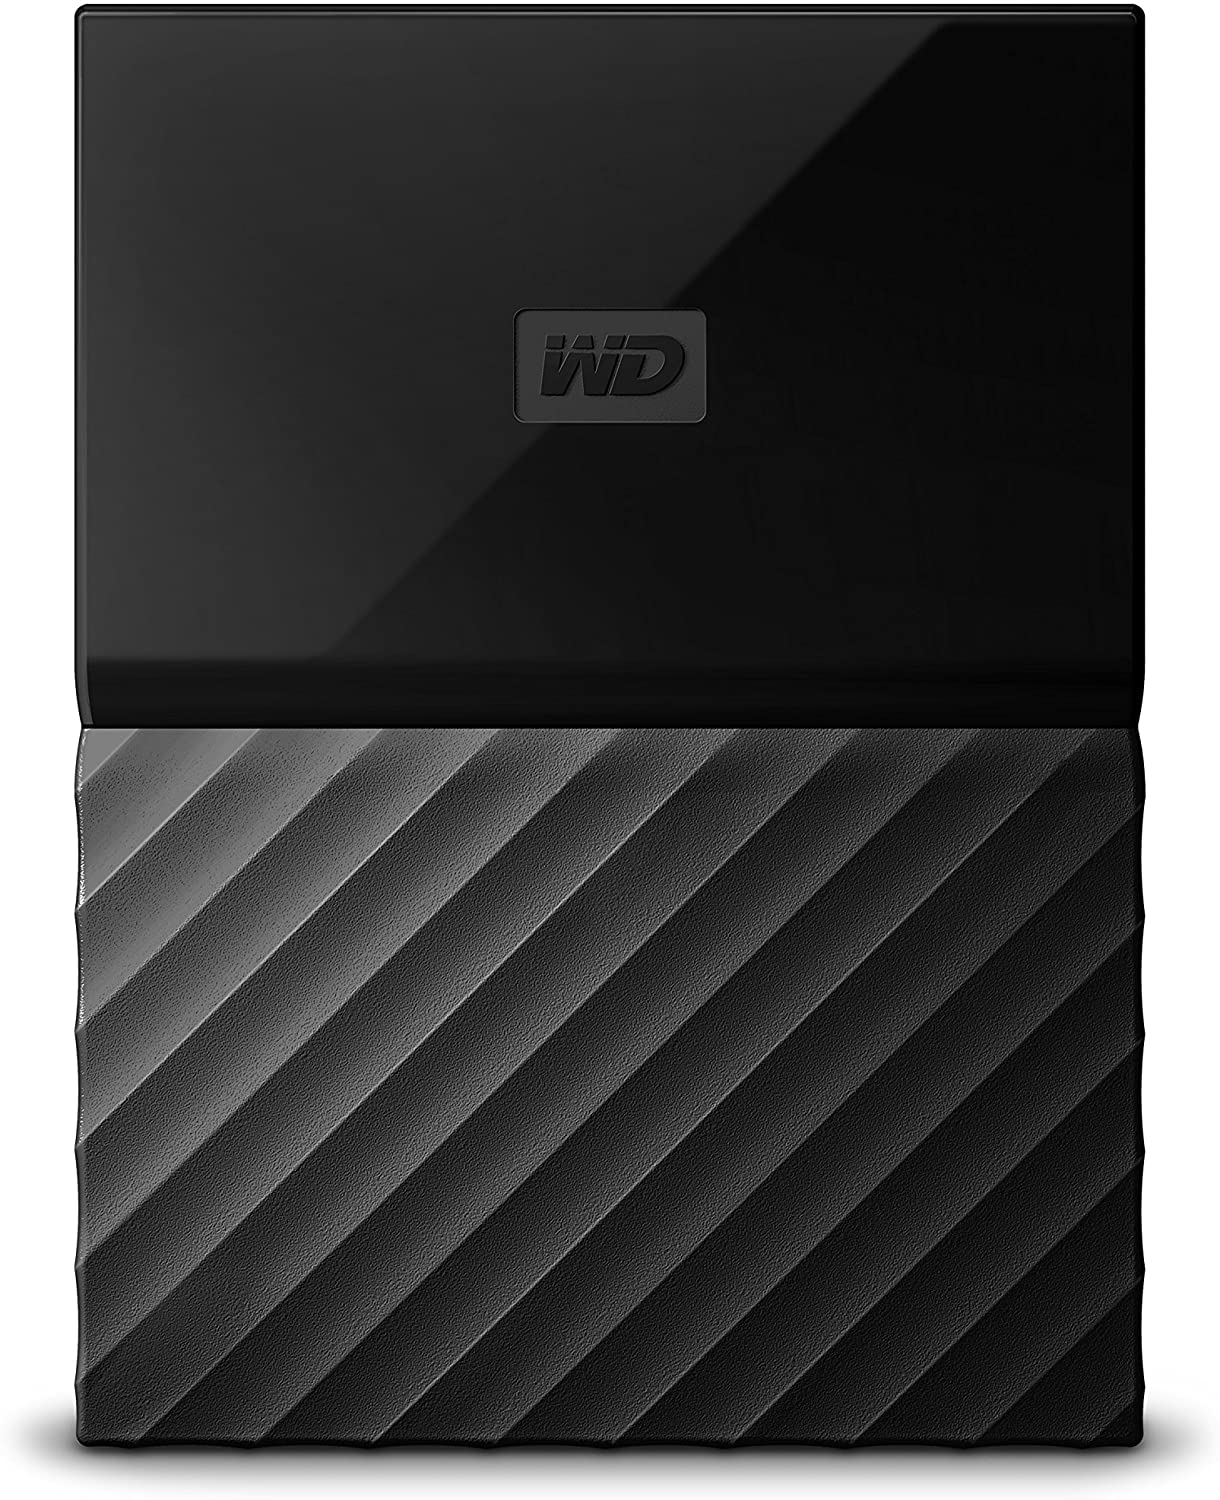 Review: WD 4TB My Passport Game Storage External Hard Drive 2